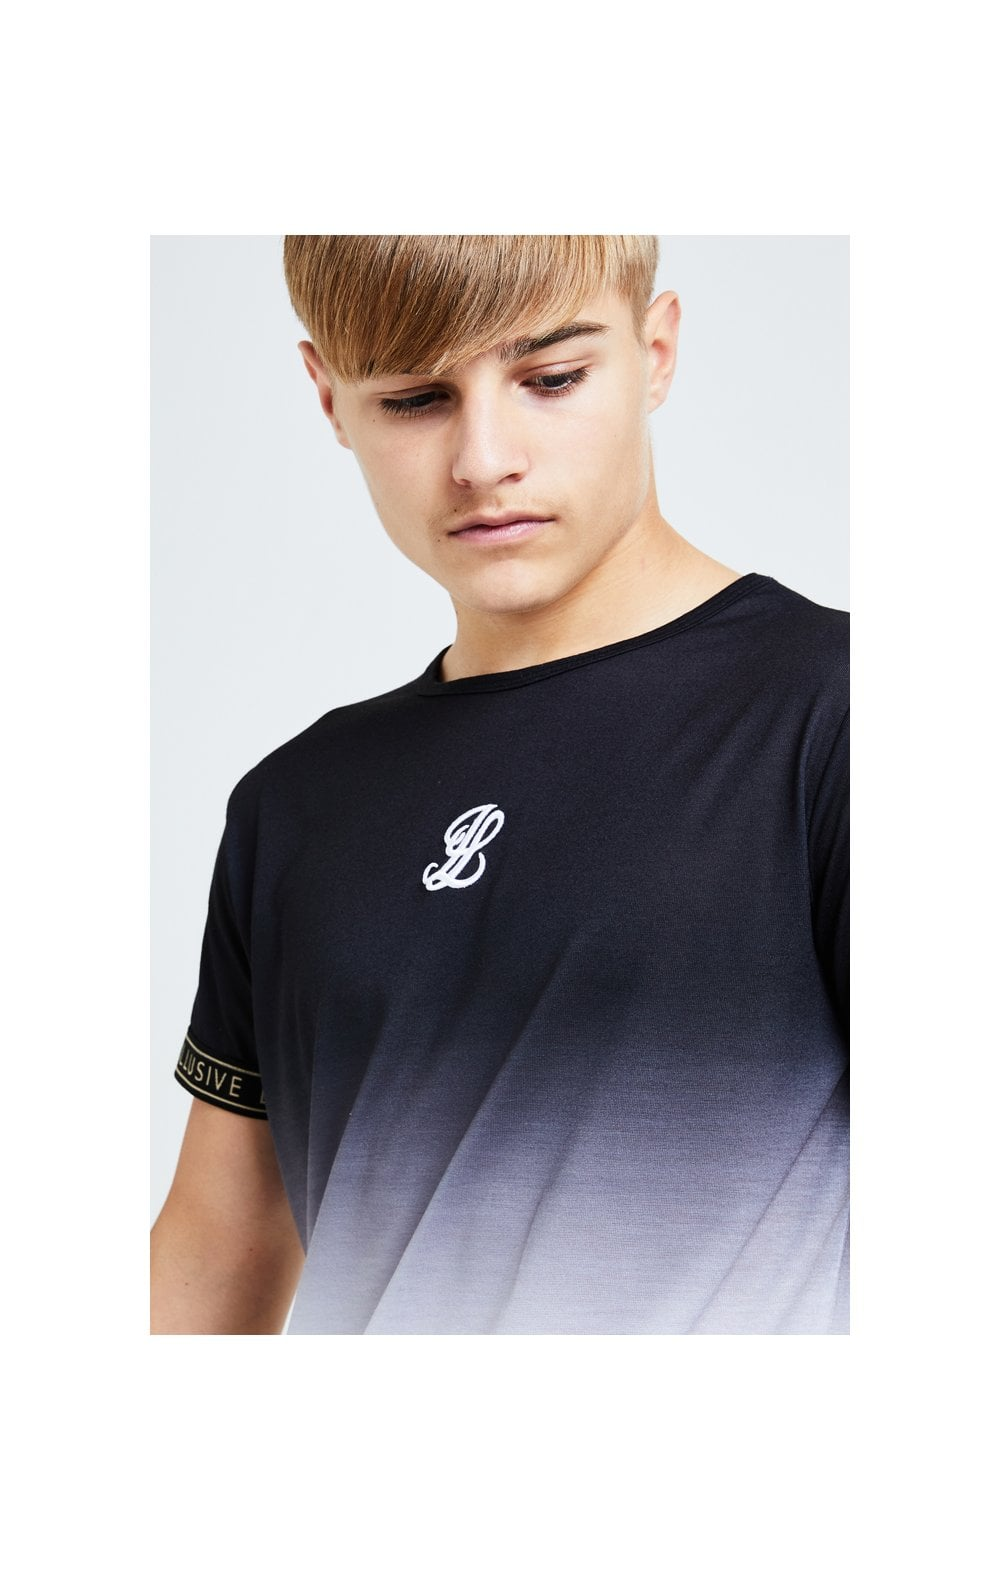 Load image into Gallery viewer, Illusive London Diverge Fade Tech Tee - Black Gold & White